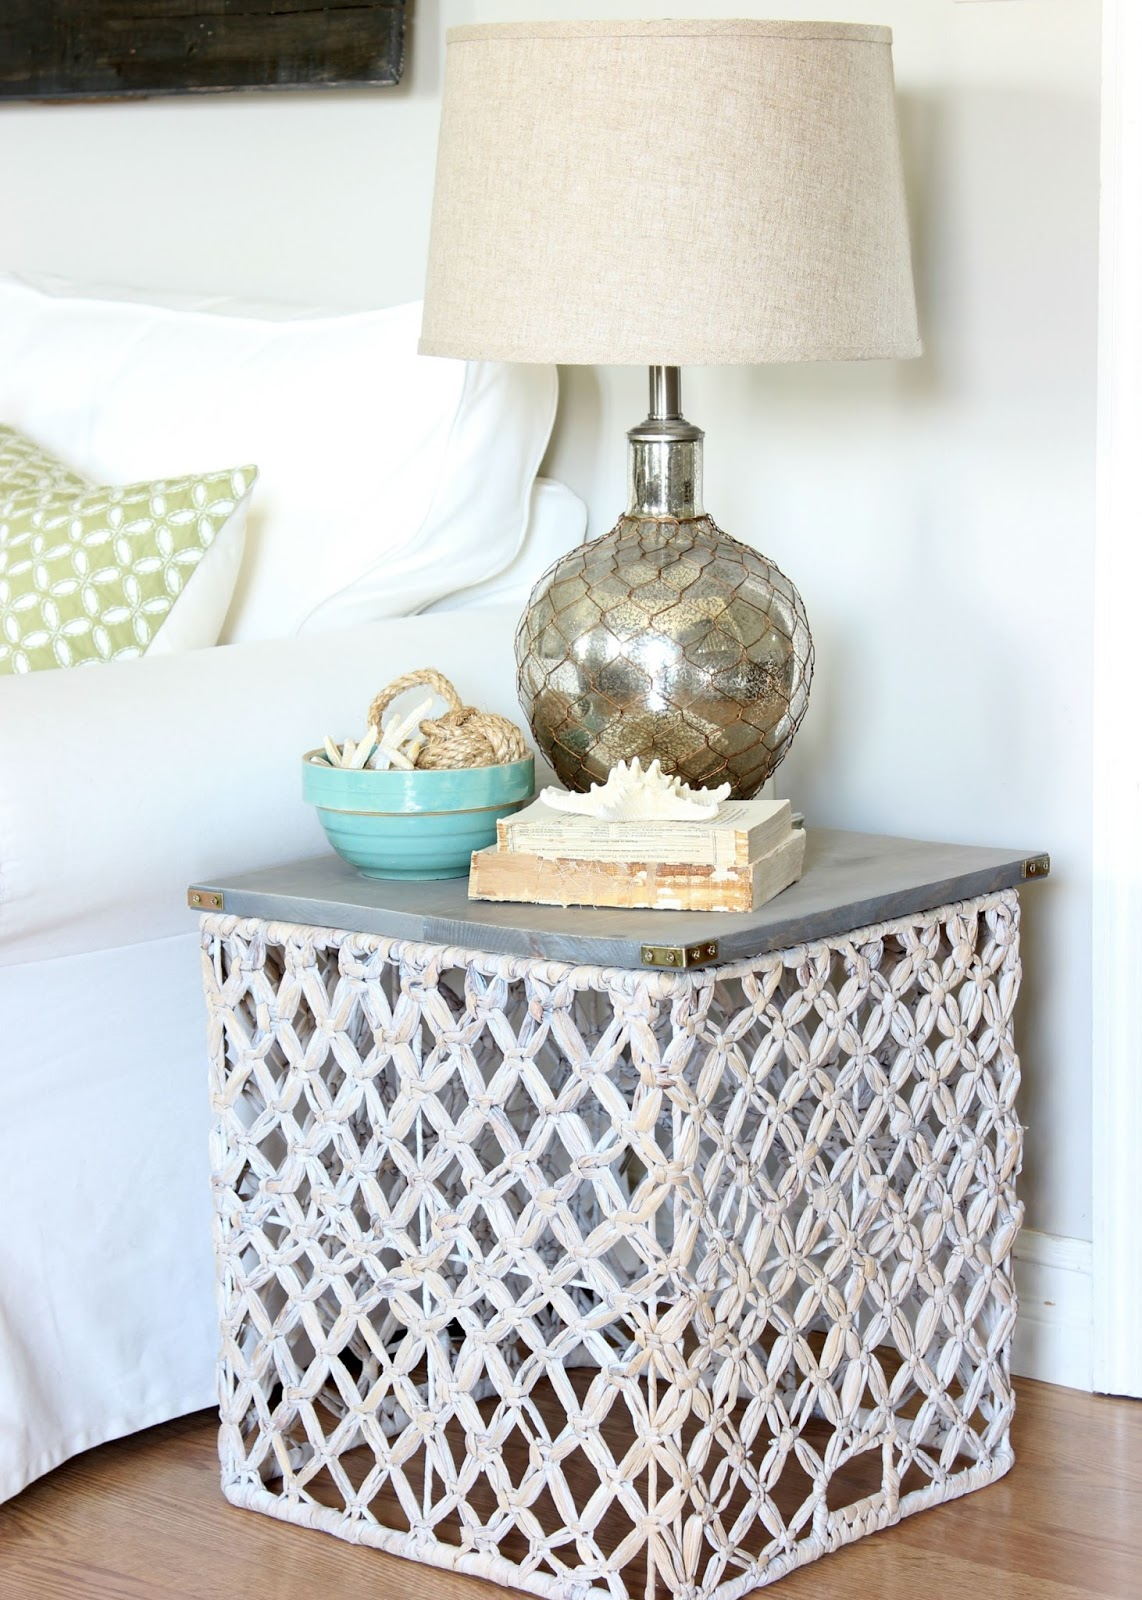 target summer basket becomes chic side table hymns and verses endtable wicker accent this turned upside down formed the base for small coffee with drawers ikea concrete wood